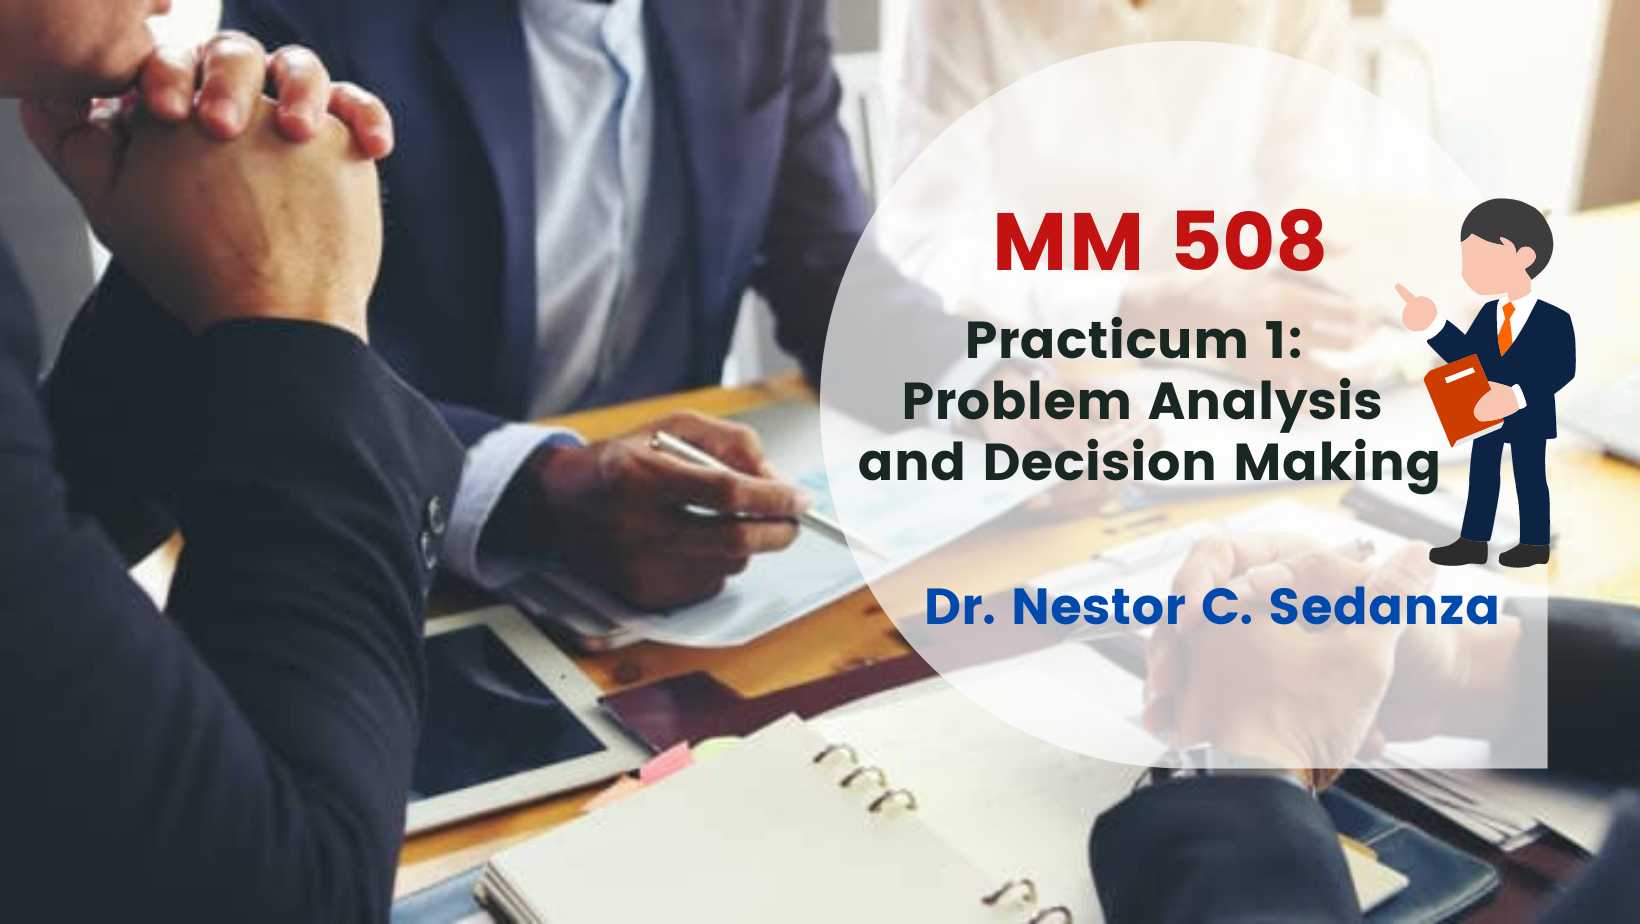 Practicum 1 - Problem Analysis and Decision Making